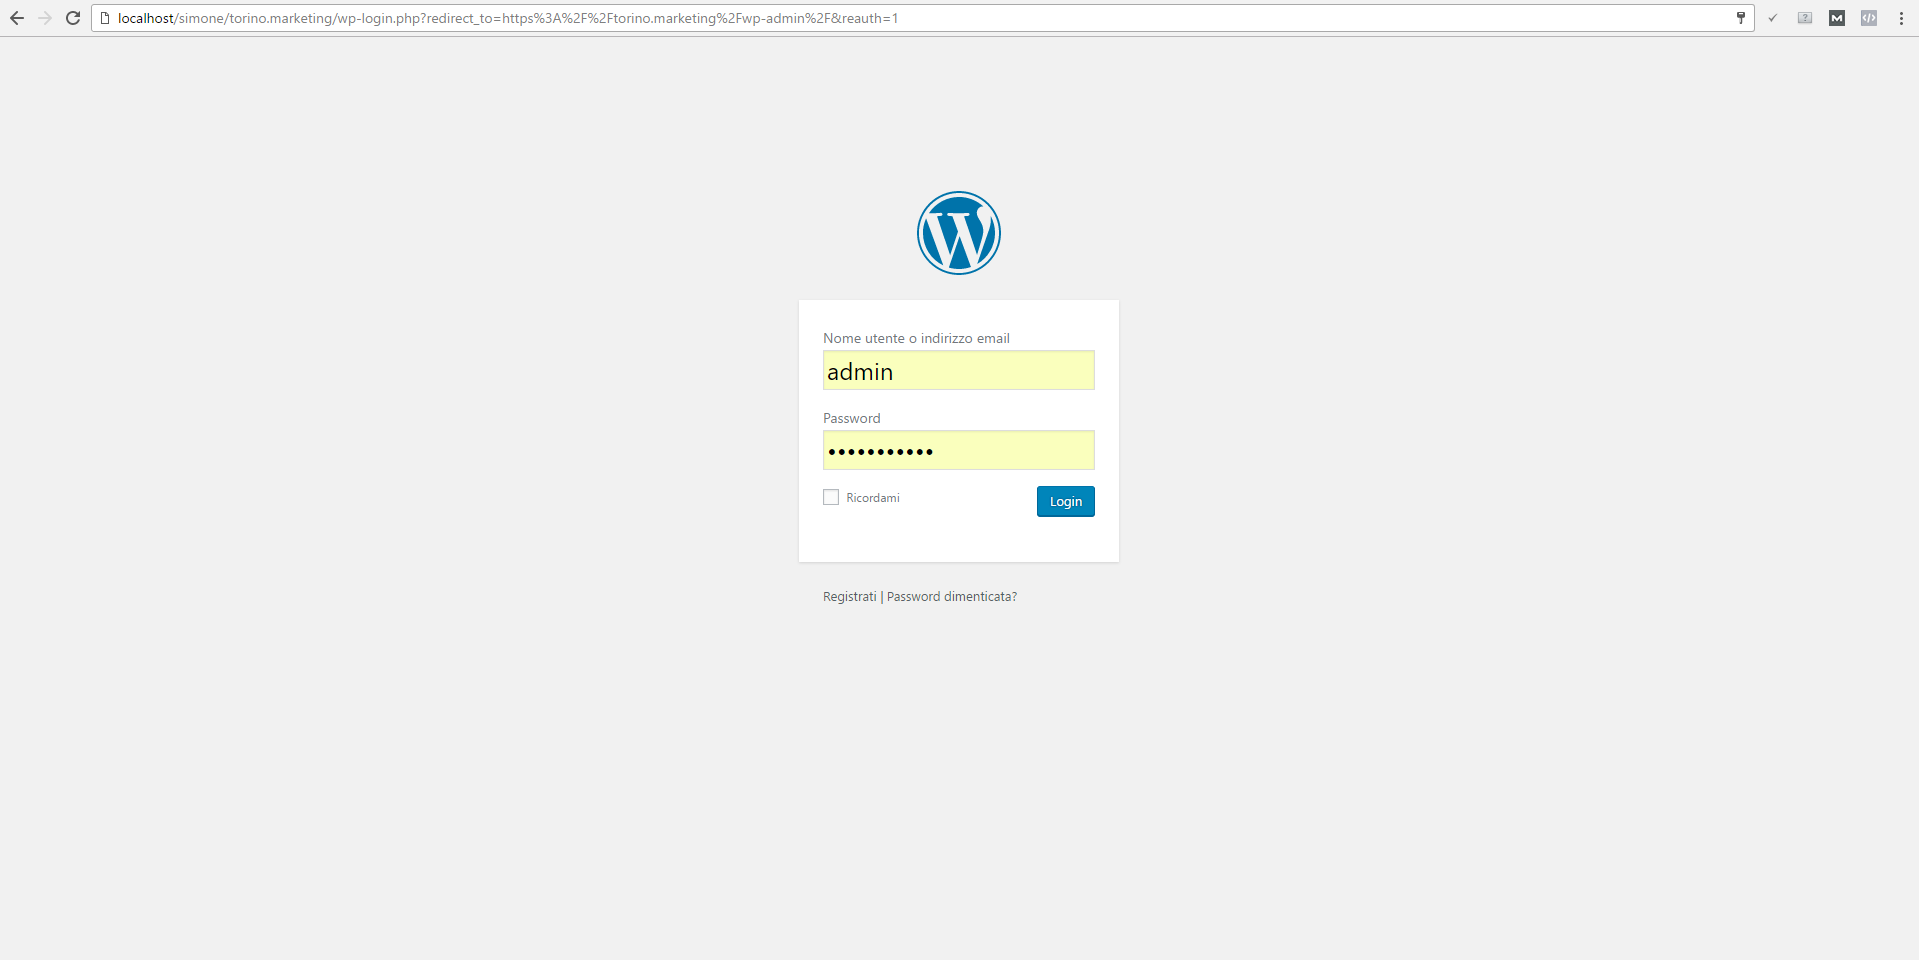 problema wordpress multisite errore reindirizzamento loop